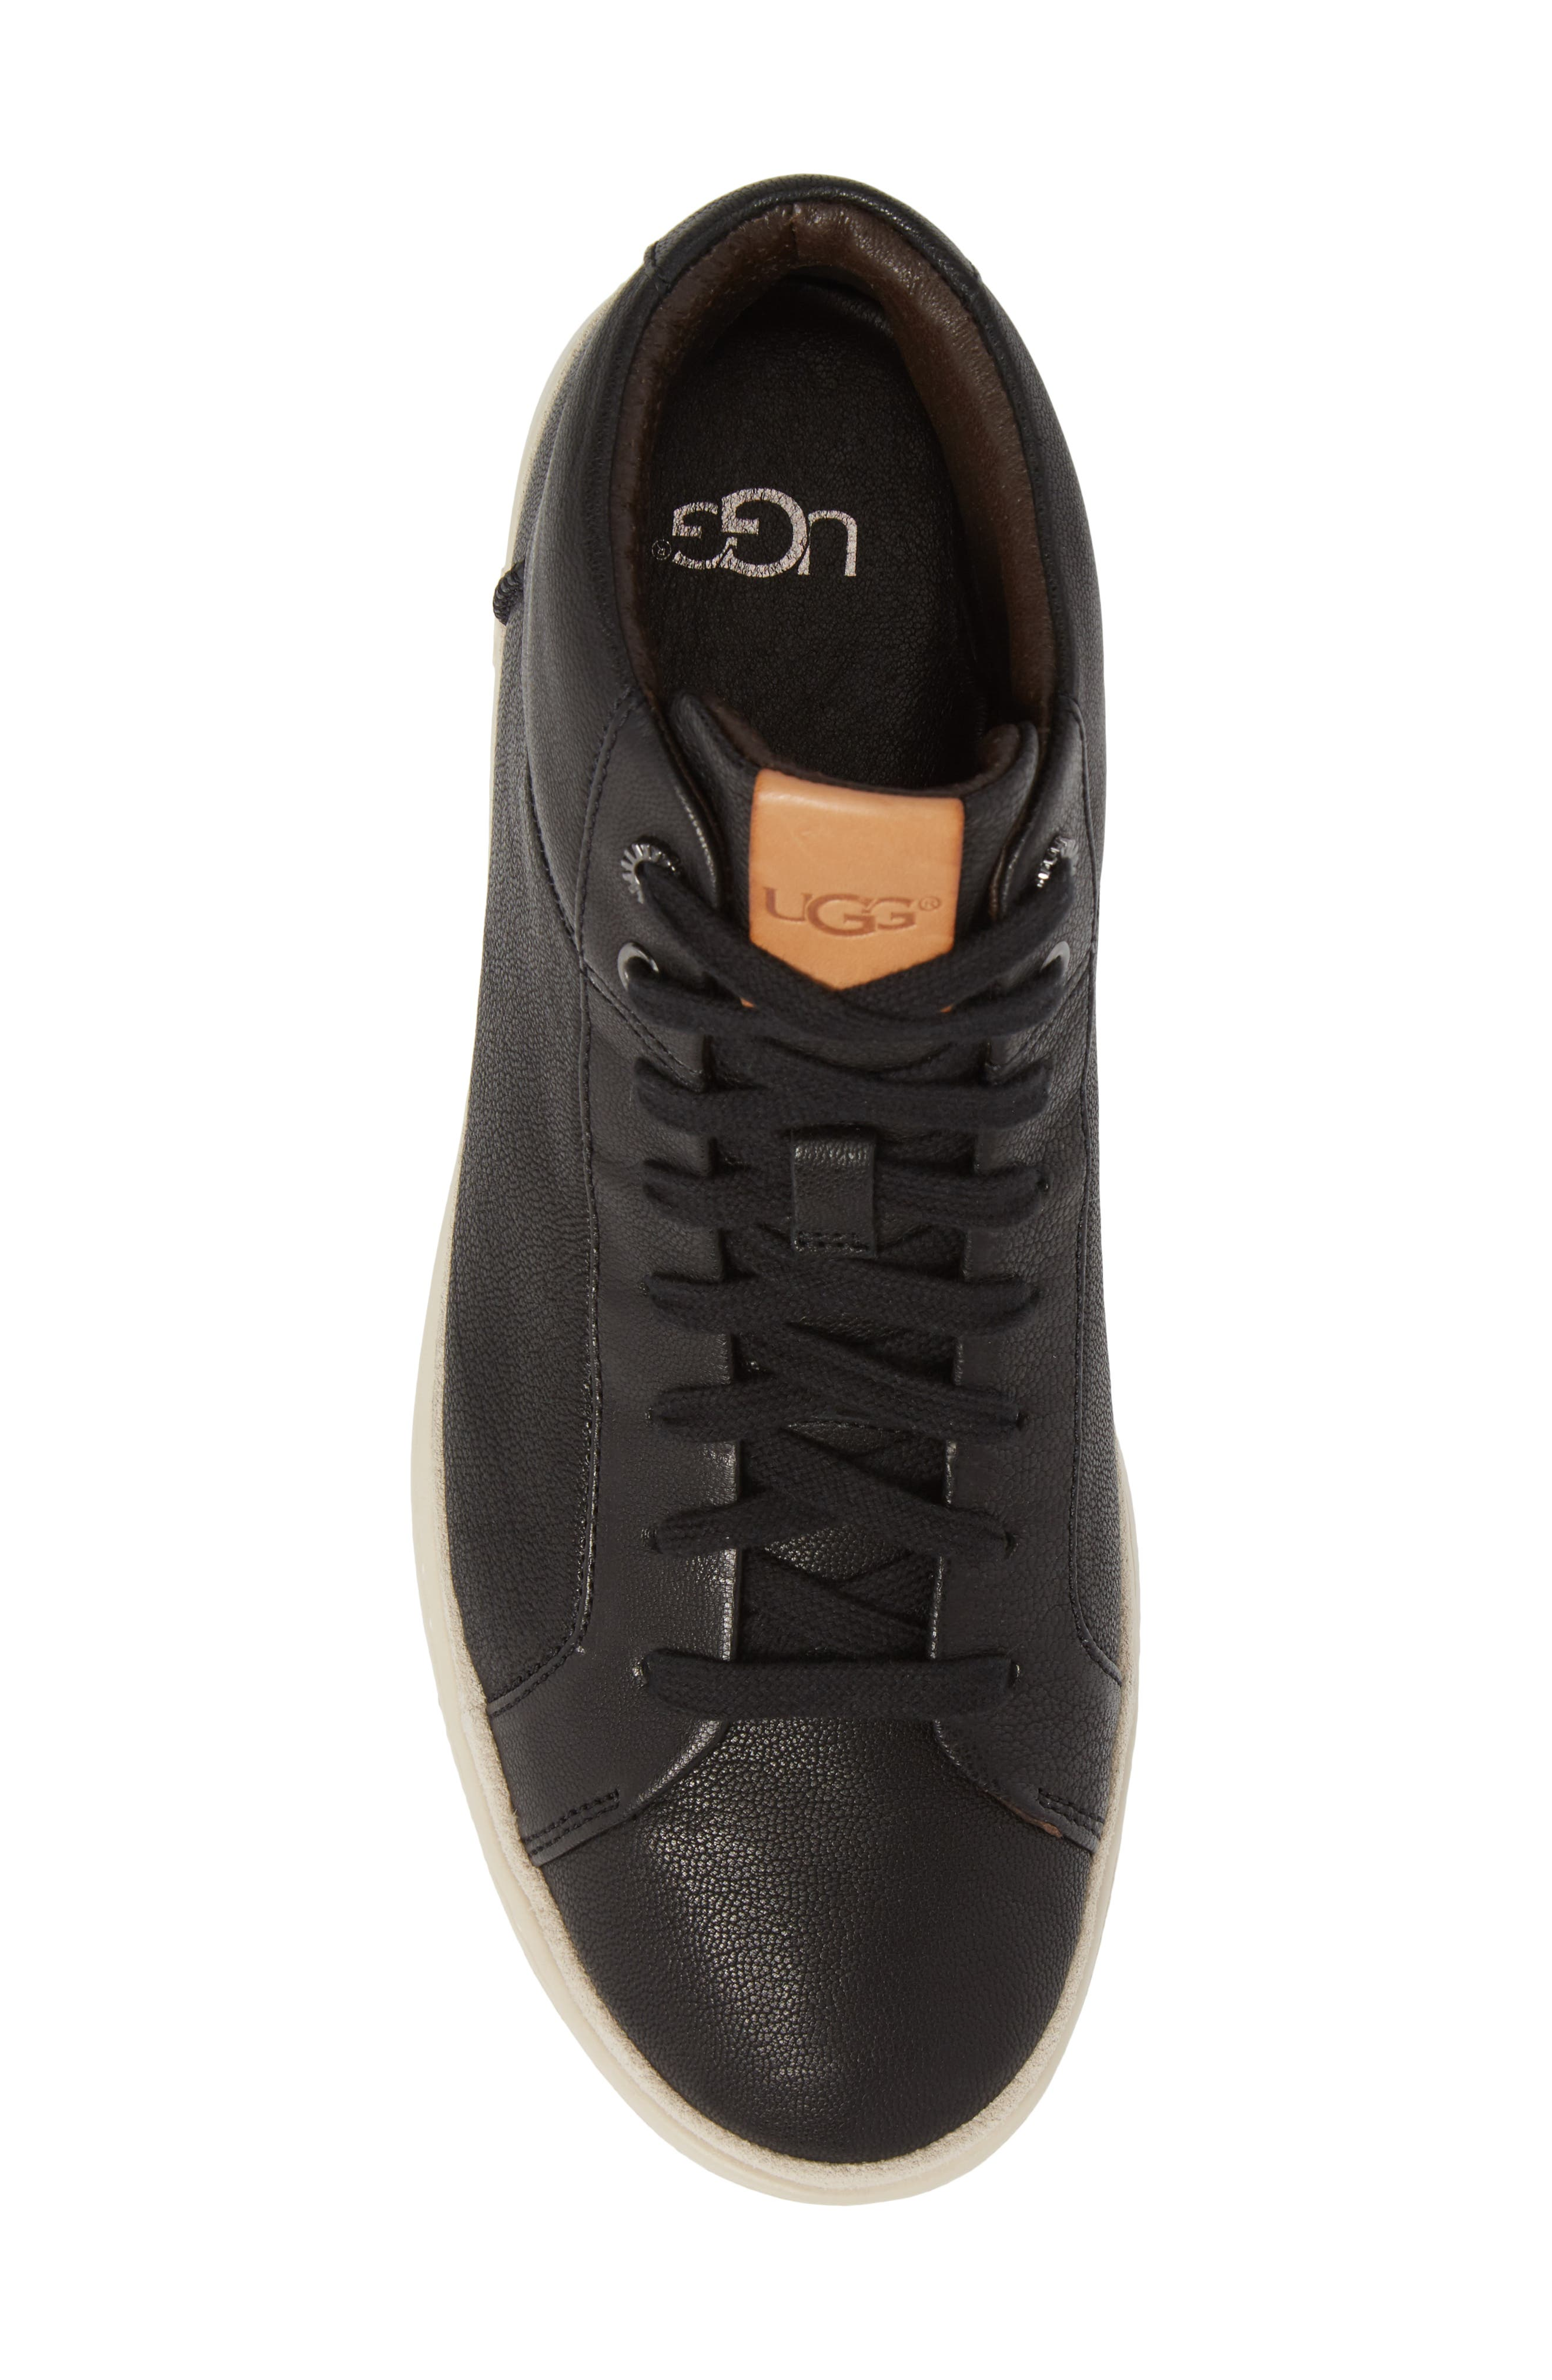 Cali High Top Sneaker,                             Alternate thumbnail 5, color,                             BLACK LEATHER